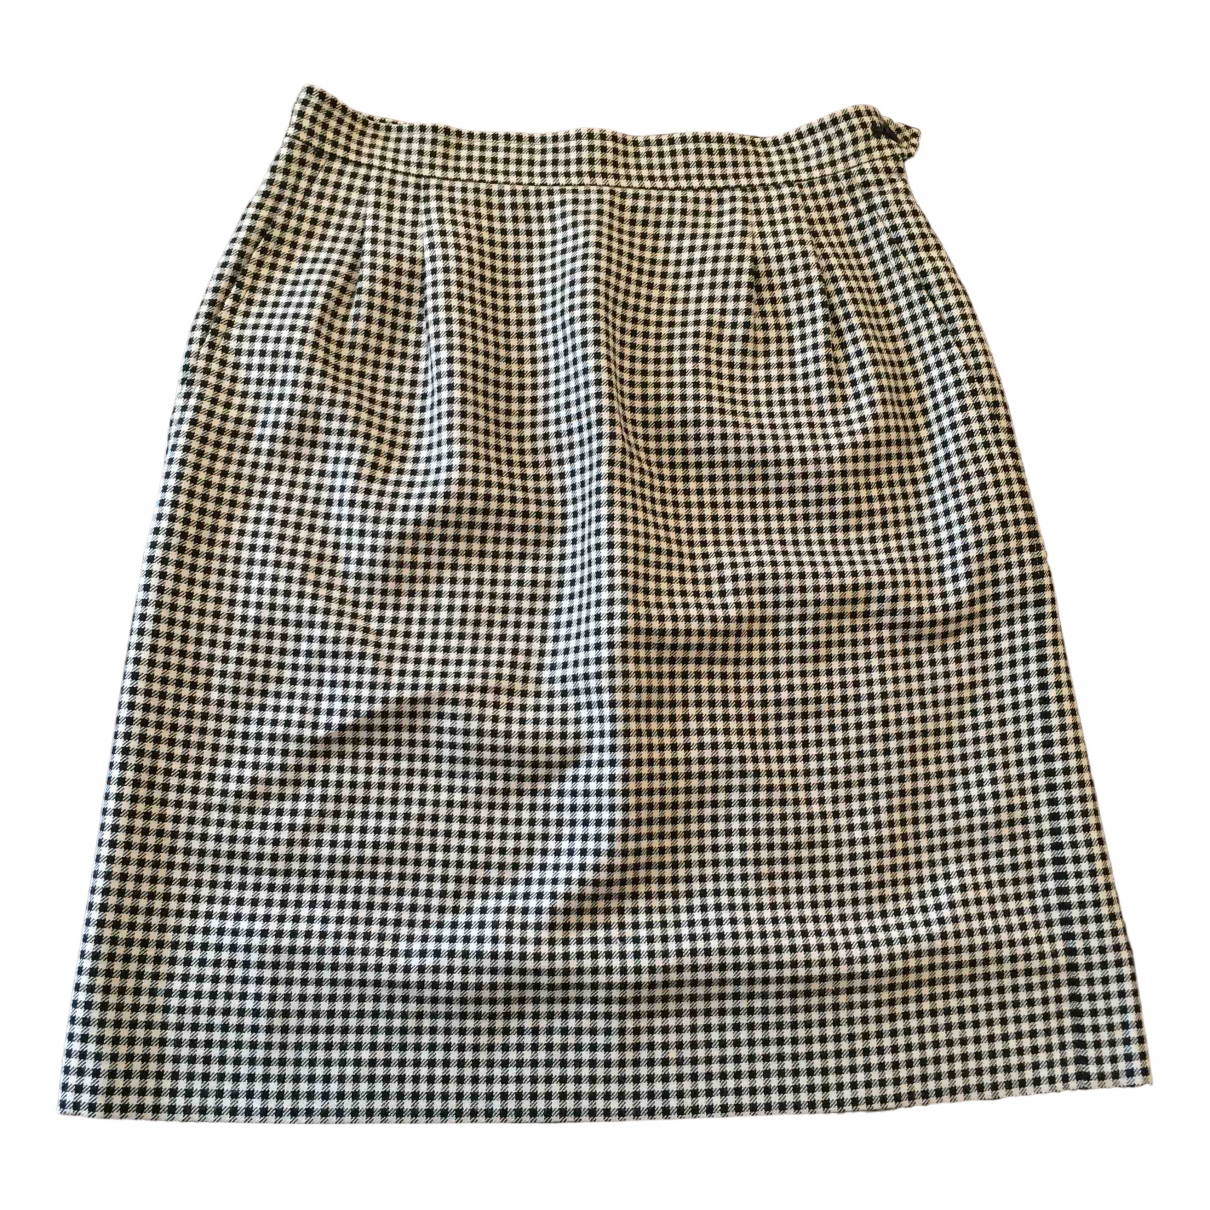 Yves Saint Laurent N Beige / Black Wool skirt for Women 40 FR